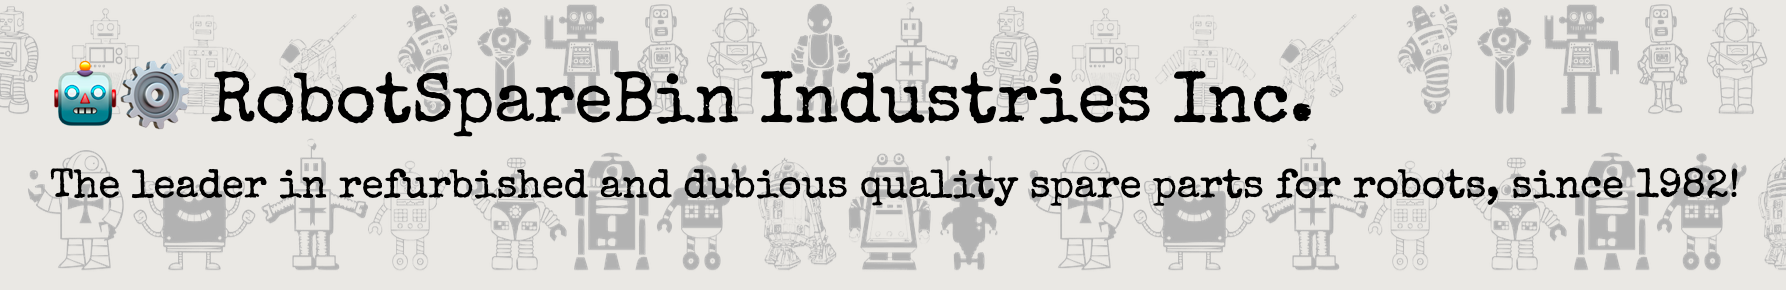 RobotSpareBin Industries Inc.